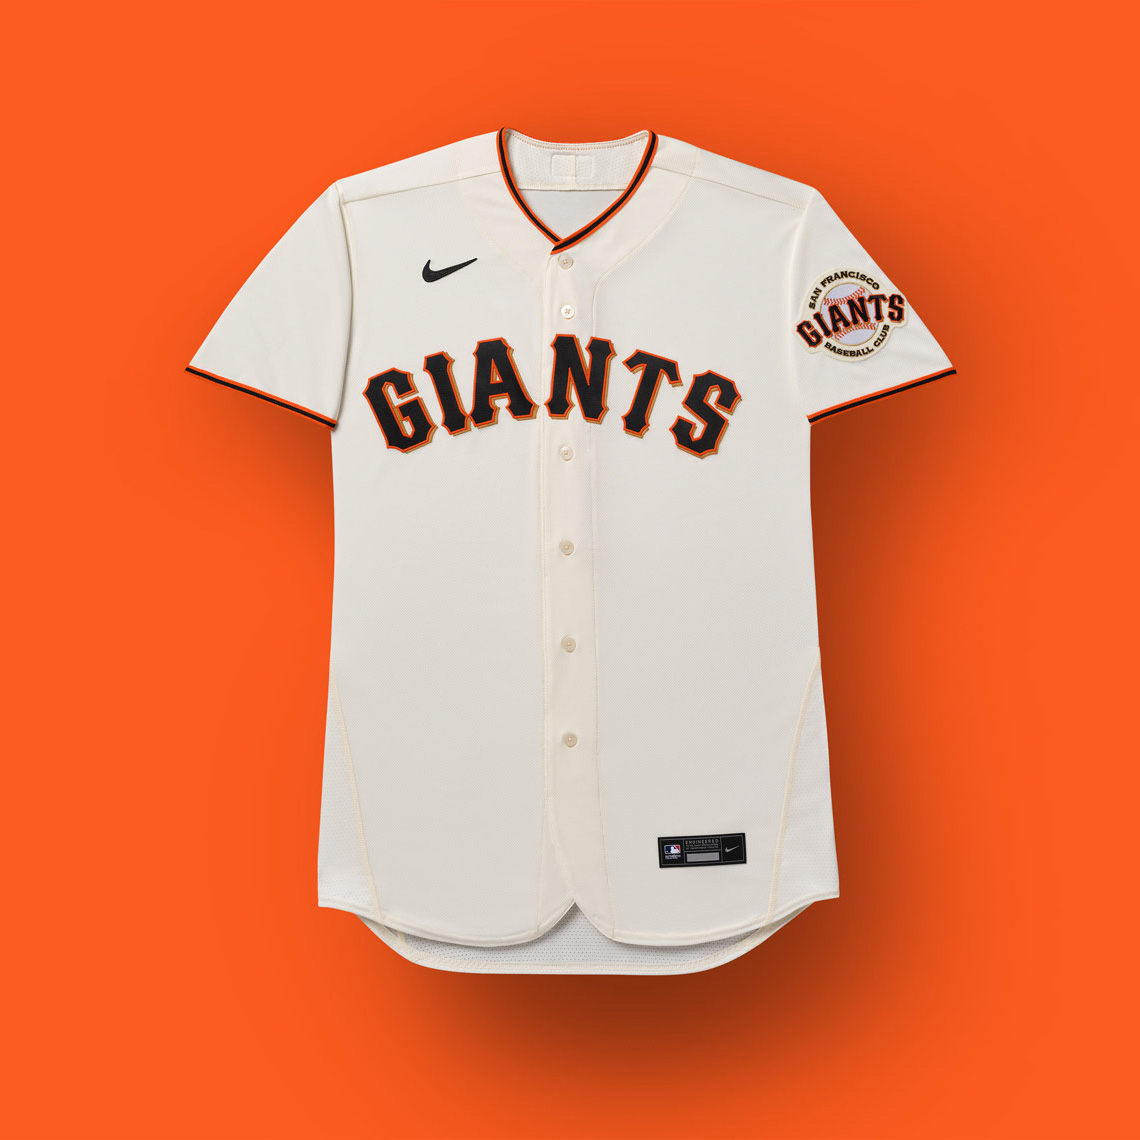 NikeNews_Jerseys_MajorLeagueBaseball2020-2021_GIANTS-0374